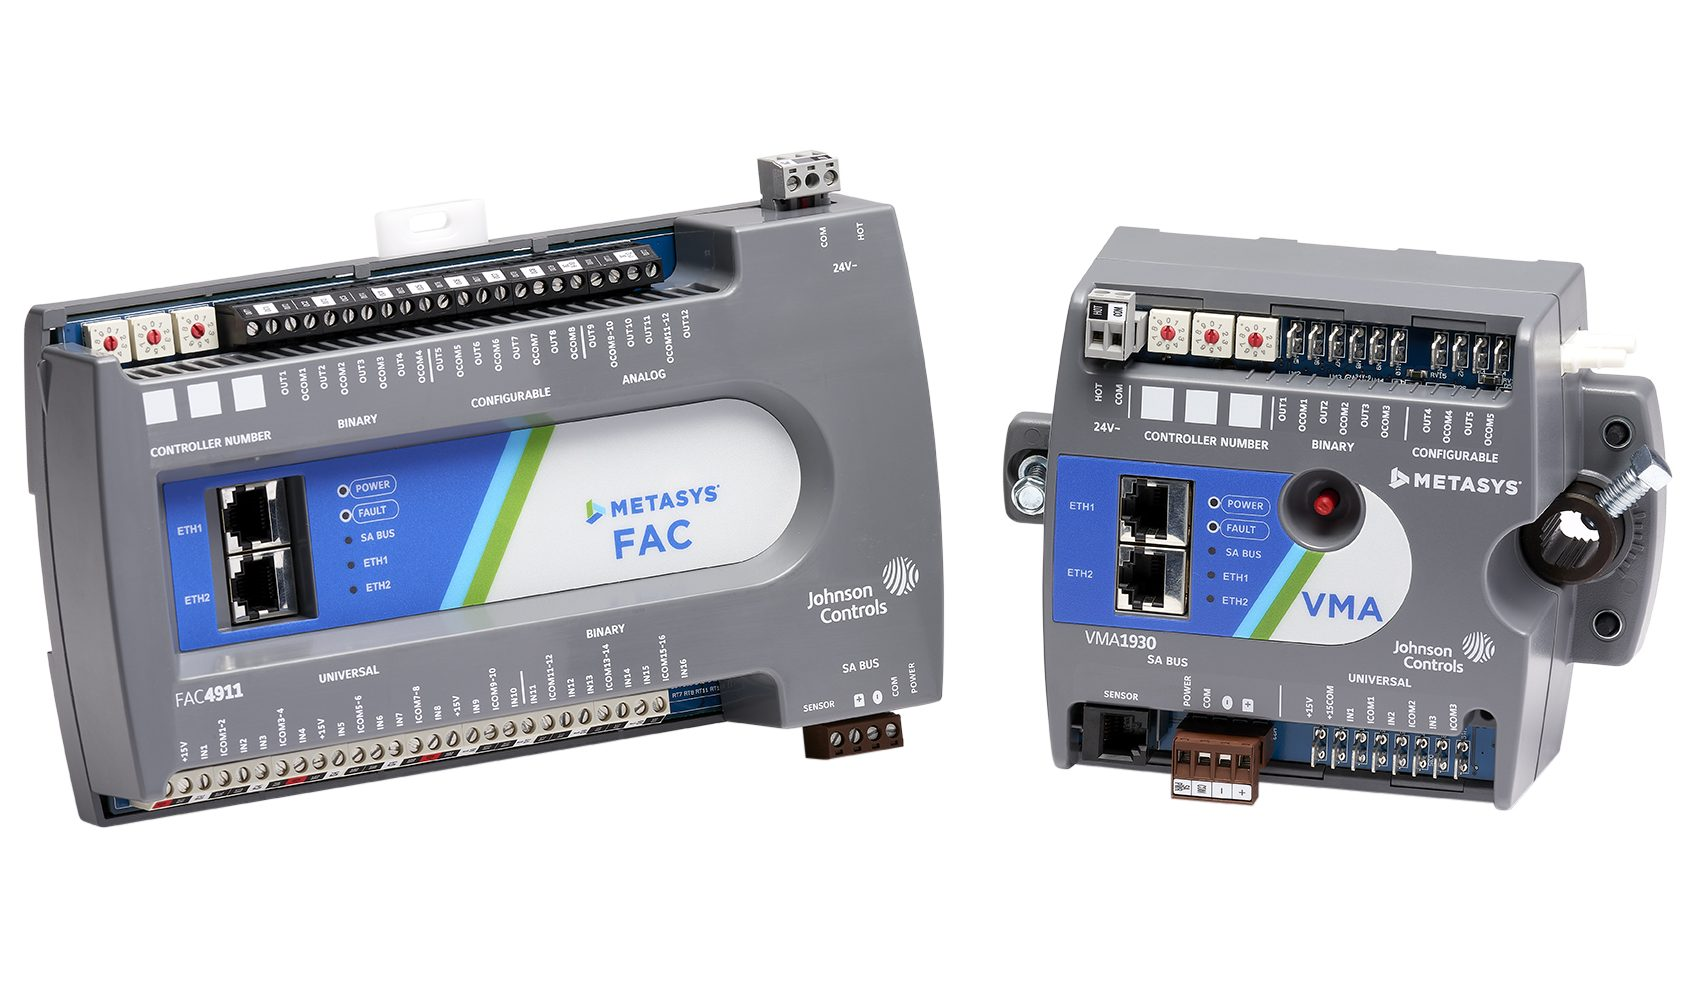 2 controllers for Metasys 9.0 building automation system